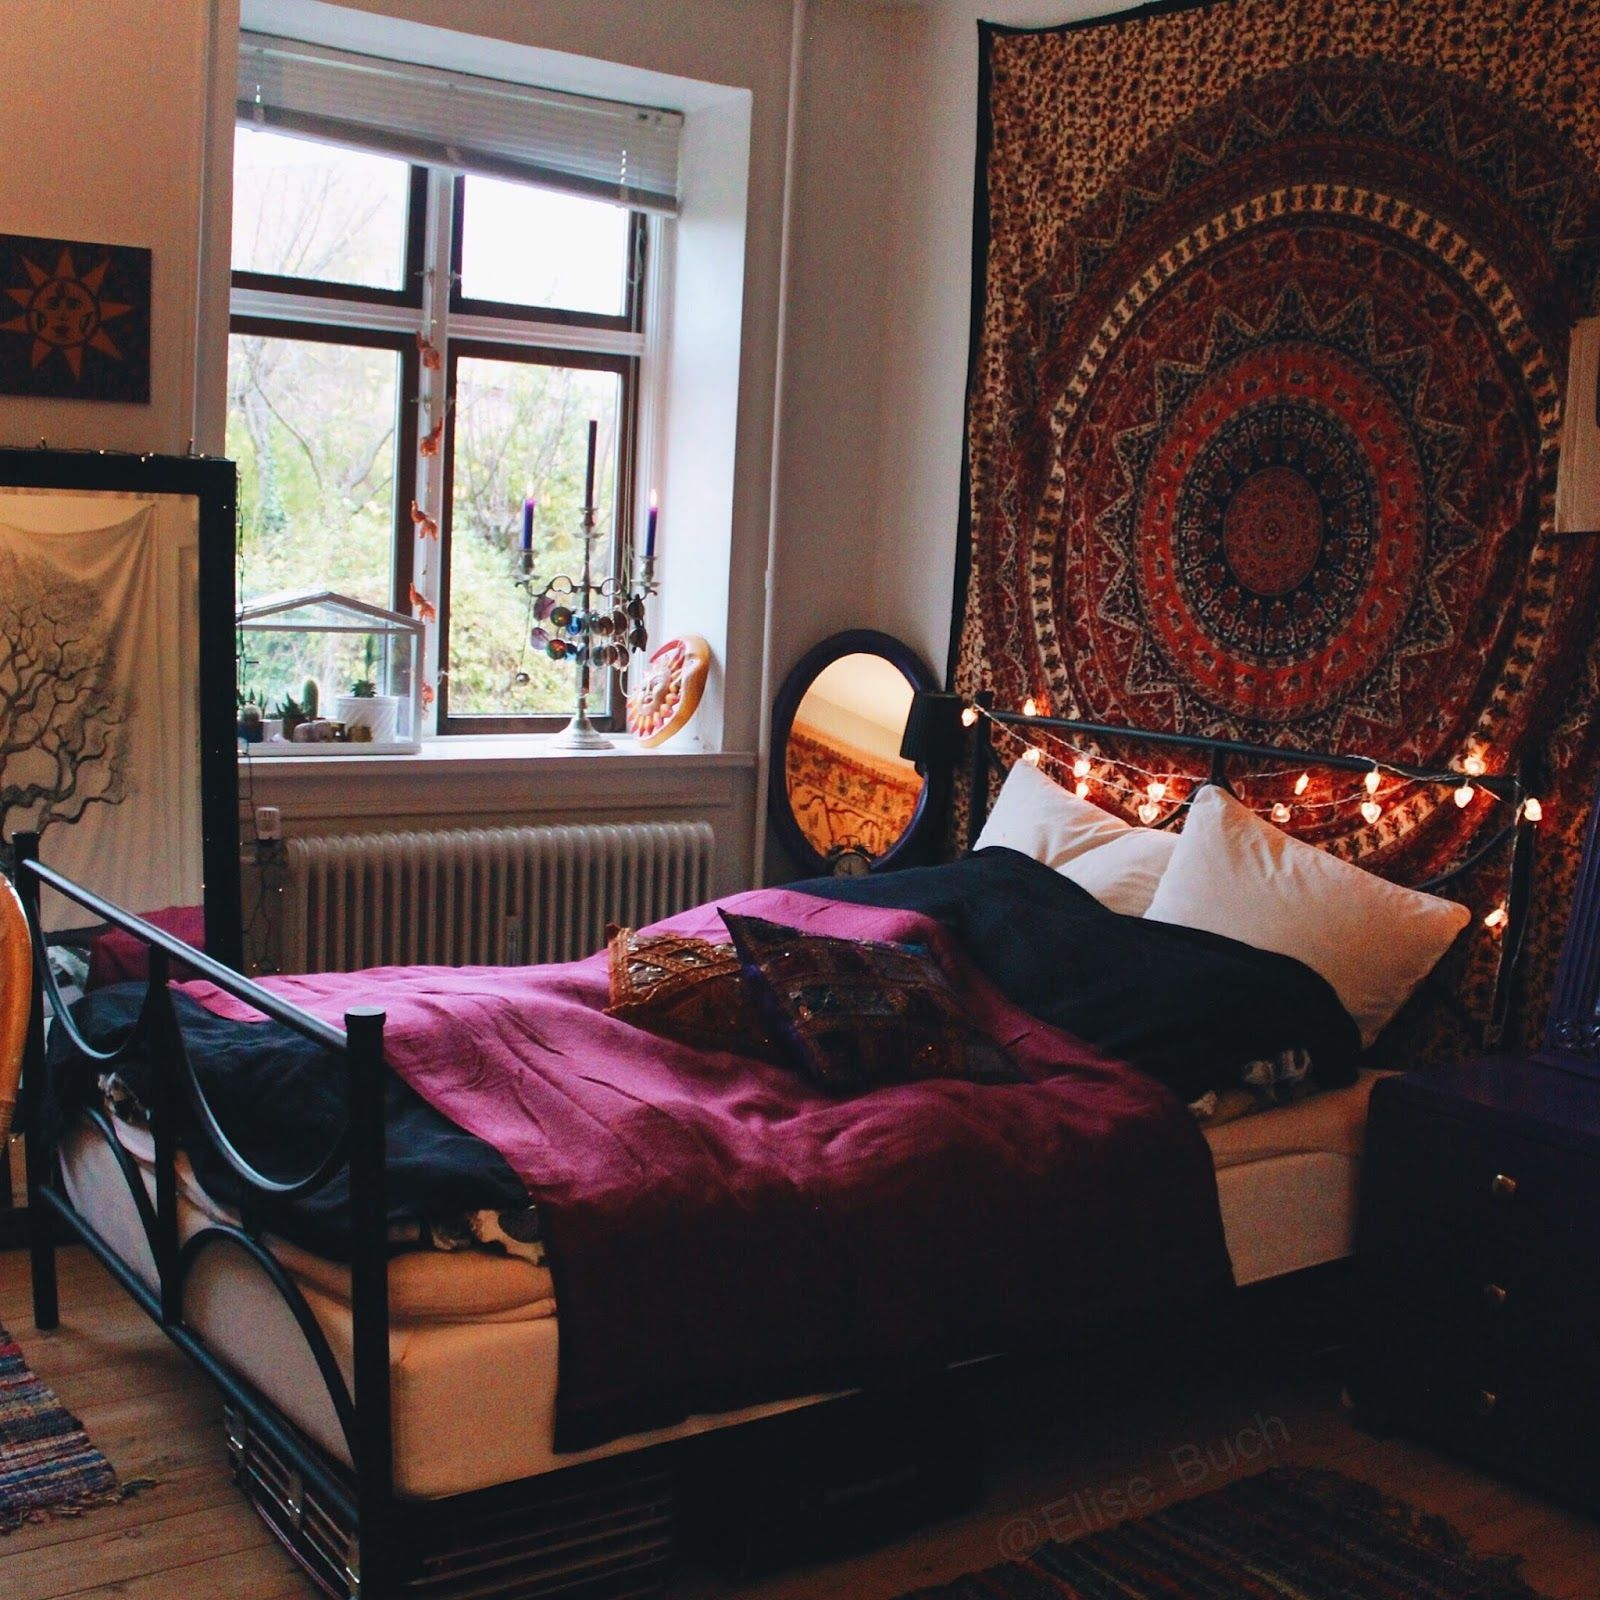 Elise buch my room makeover bohemian hippie inspired for Bohemian bedroom ideas pinterest